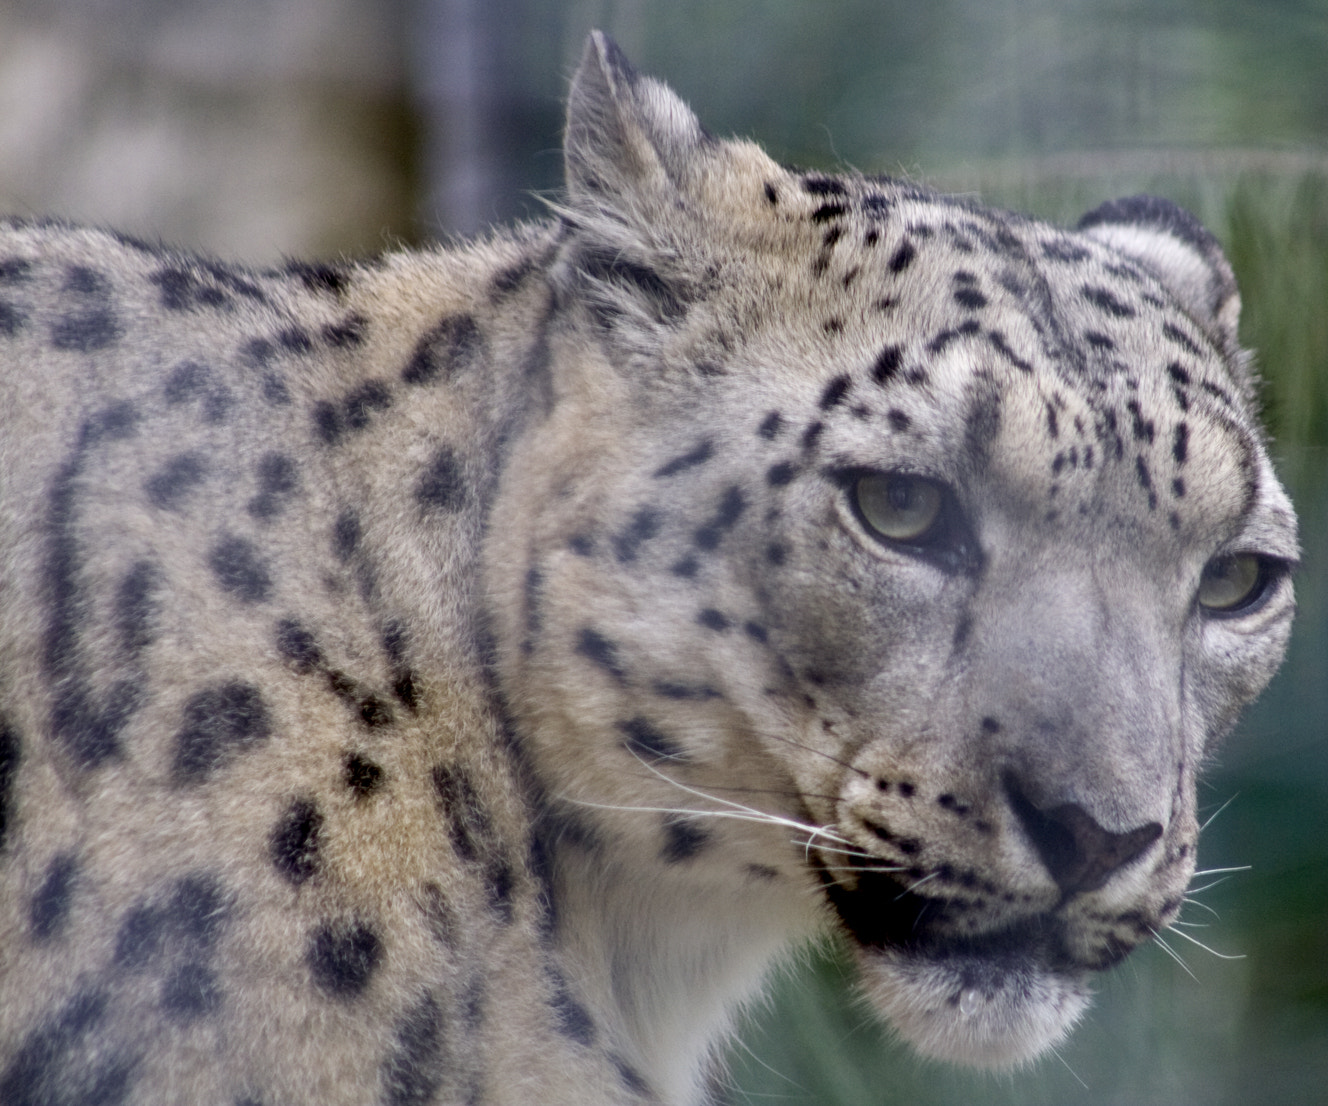 Photograph Snow Leopard_001 by Kelly Spellman on 500px